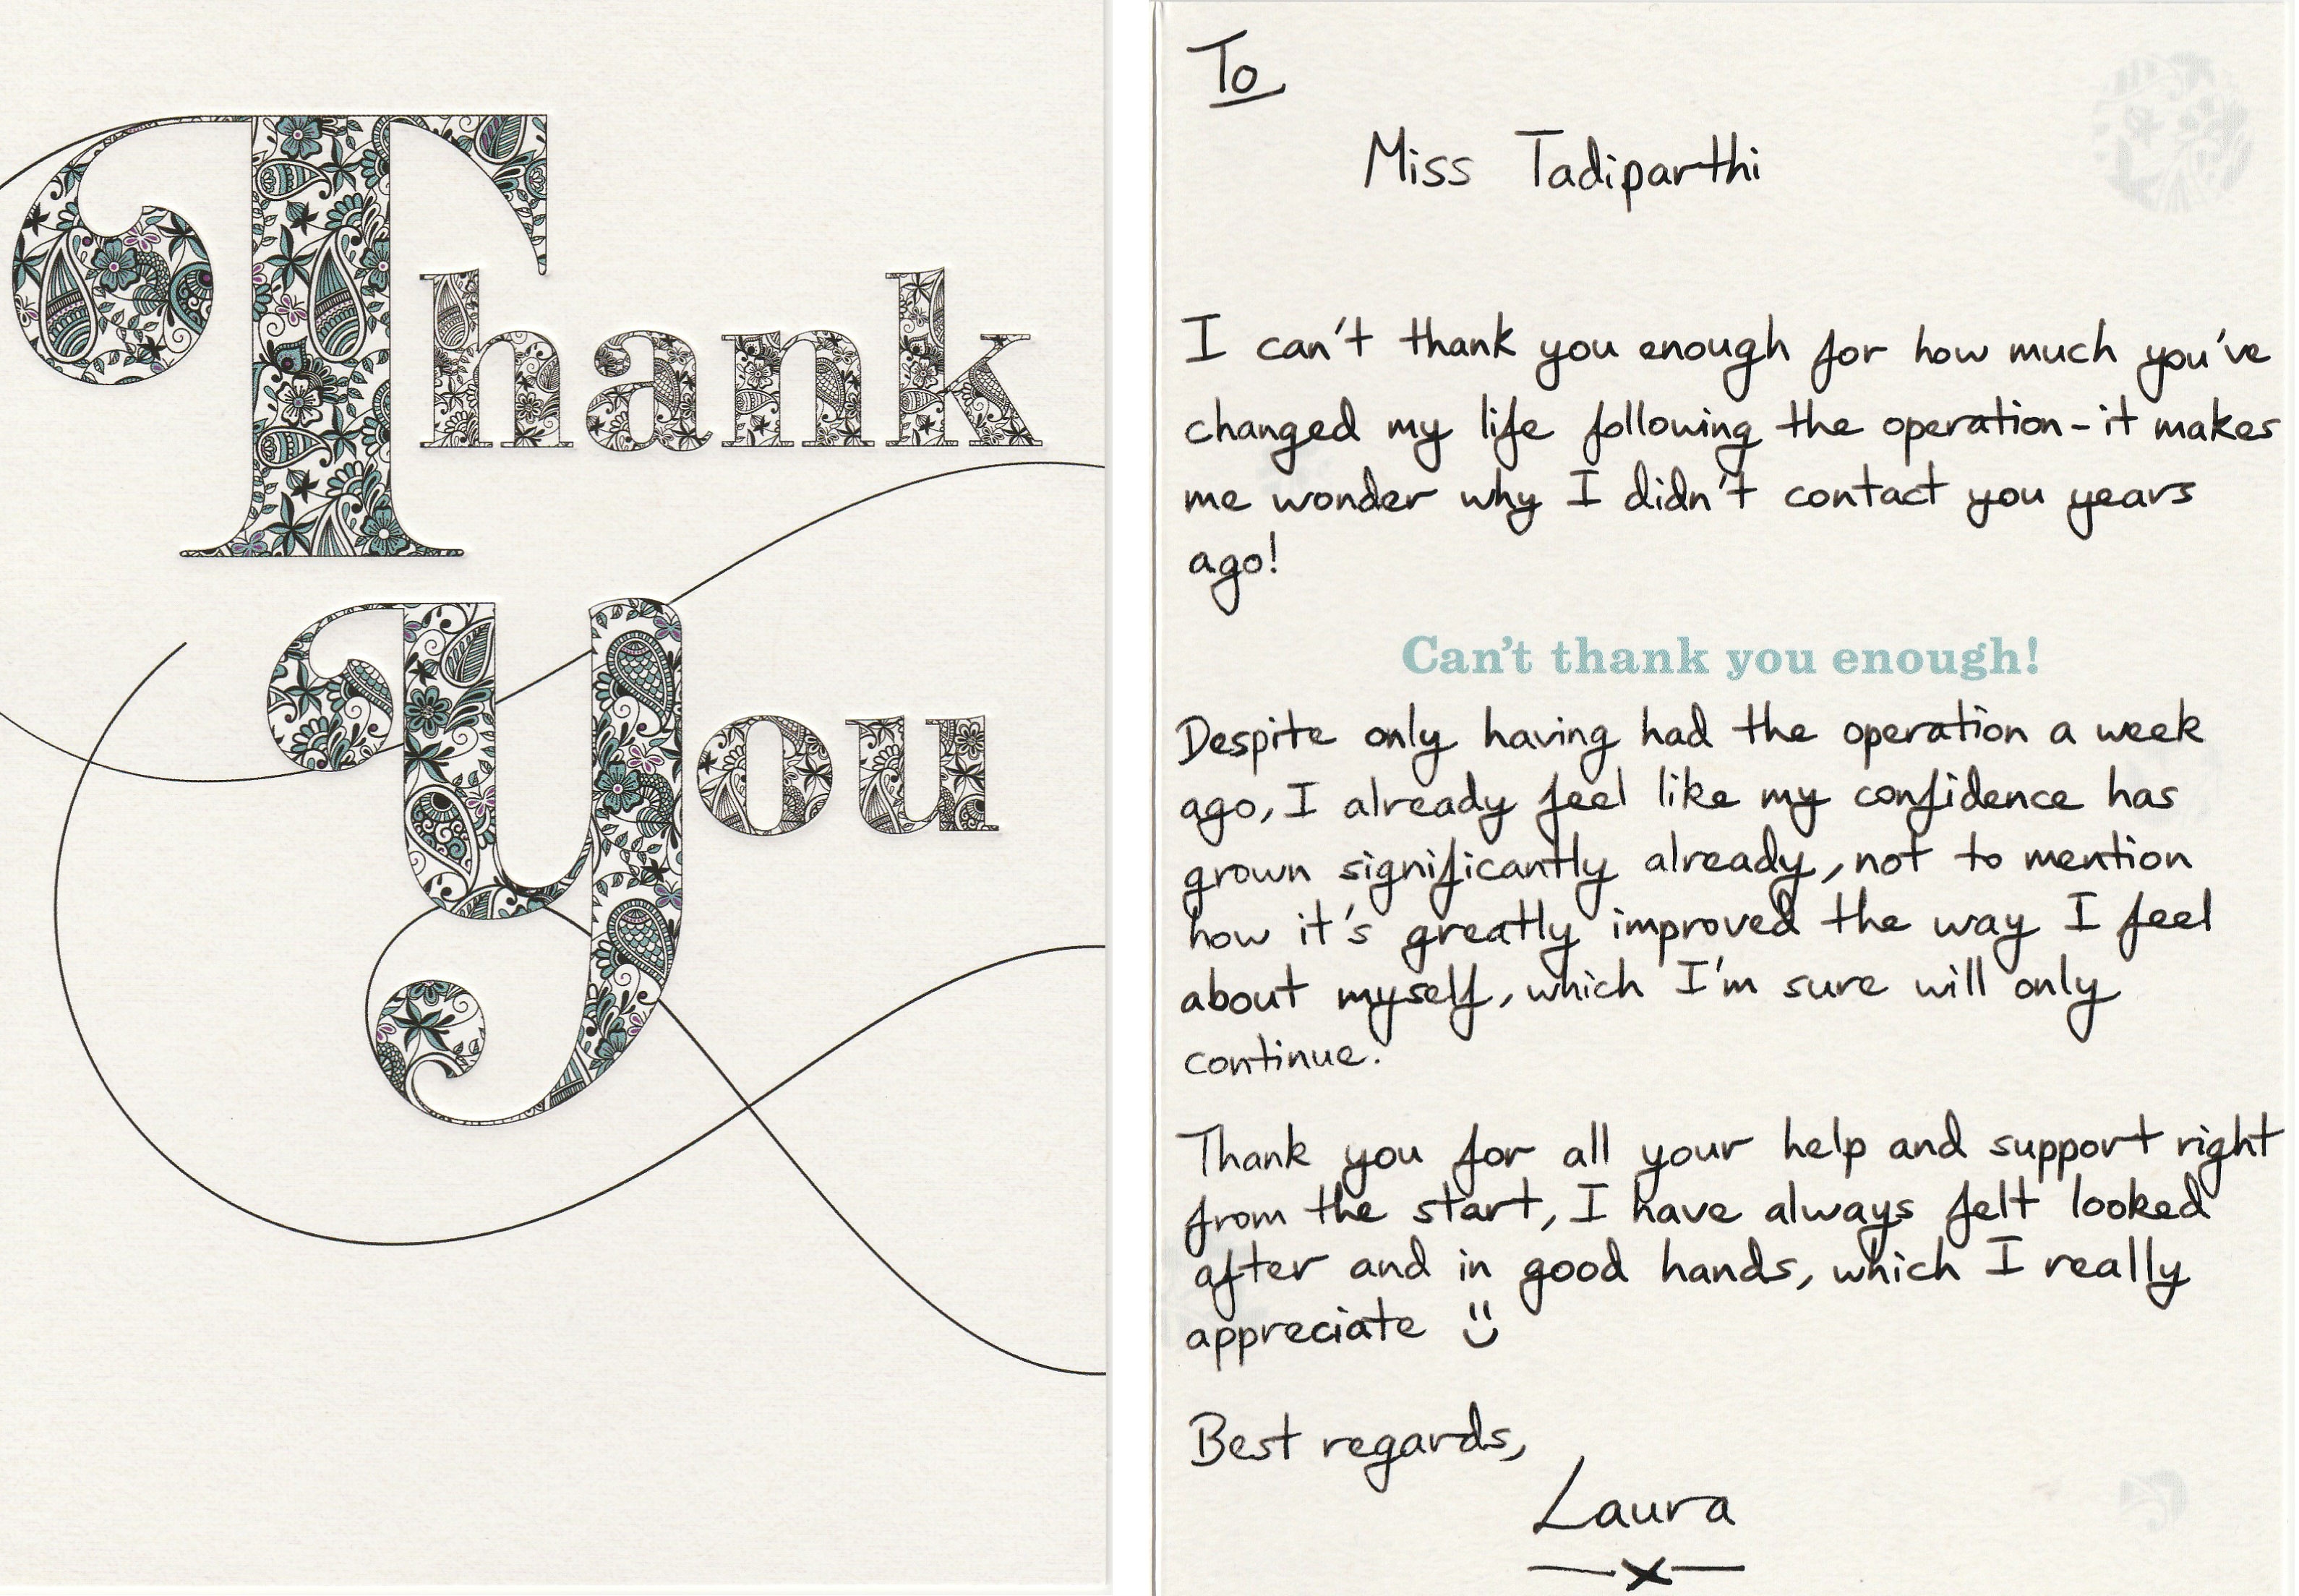 Lovely Thank-You Card From A Delighted Patient